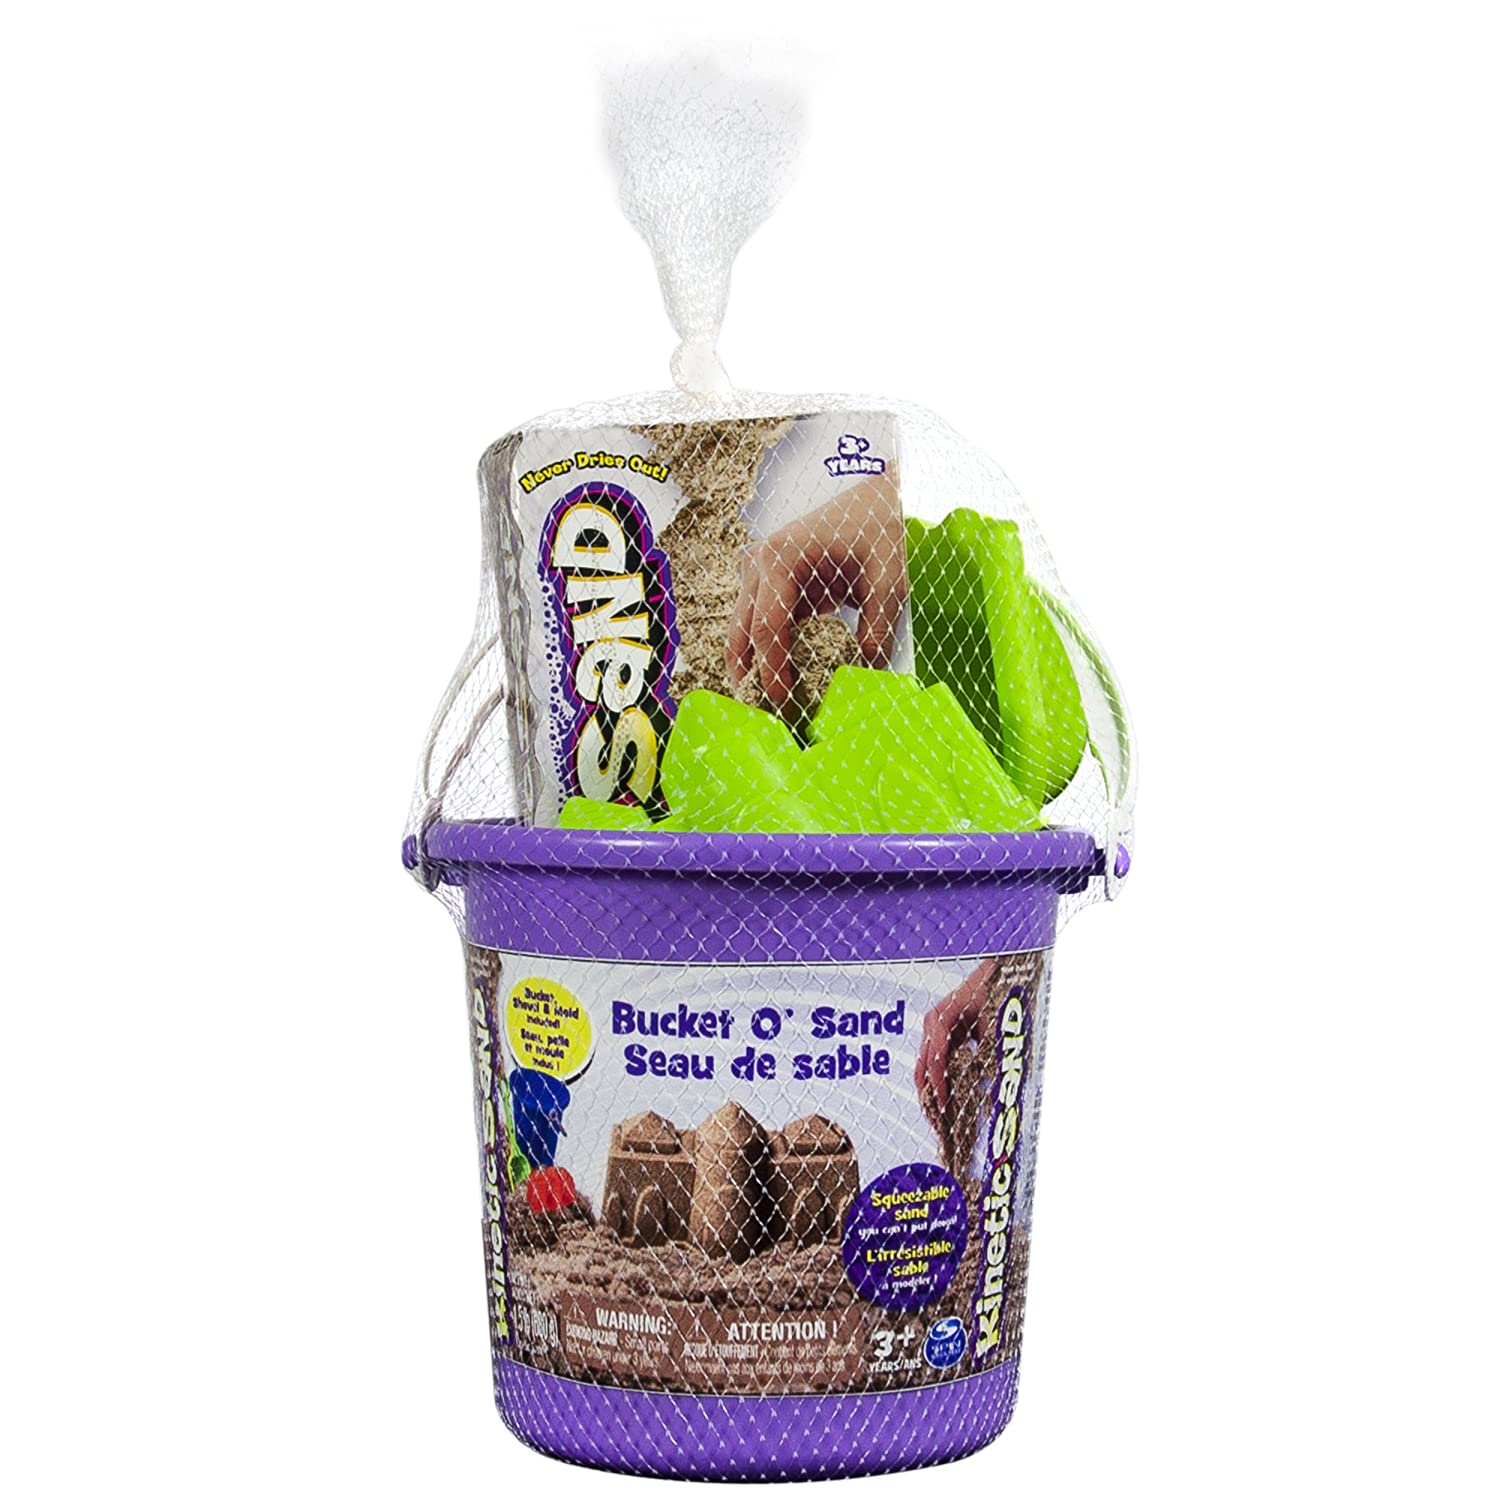 Bucket OSand 1.5 pounds Brown Kinetic Sand with Castle Mold and Shovel Spin Master 6025144